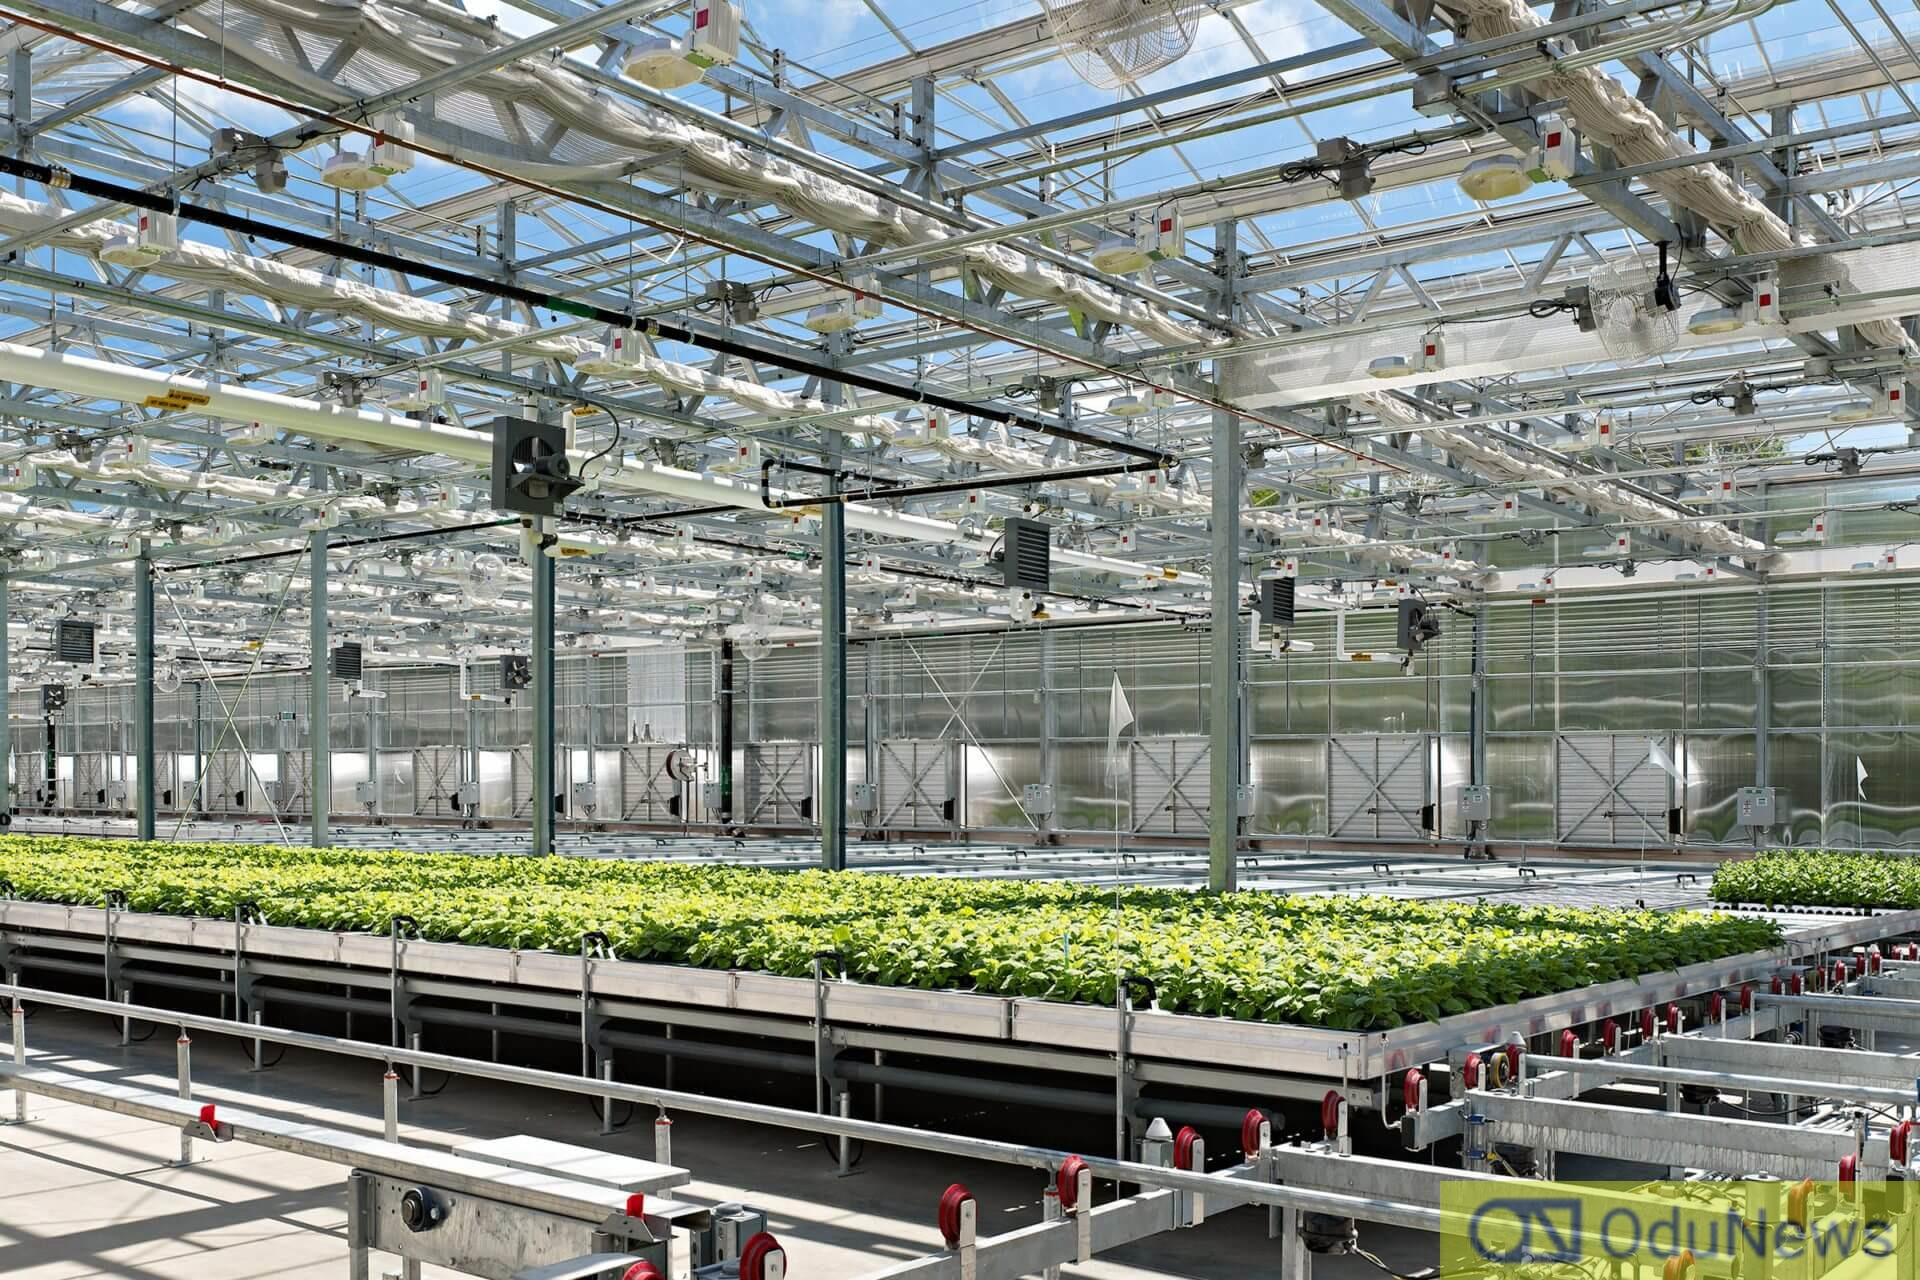 The company, known as Medicago, says it achieved the breakthrough through the use of plants